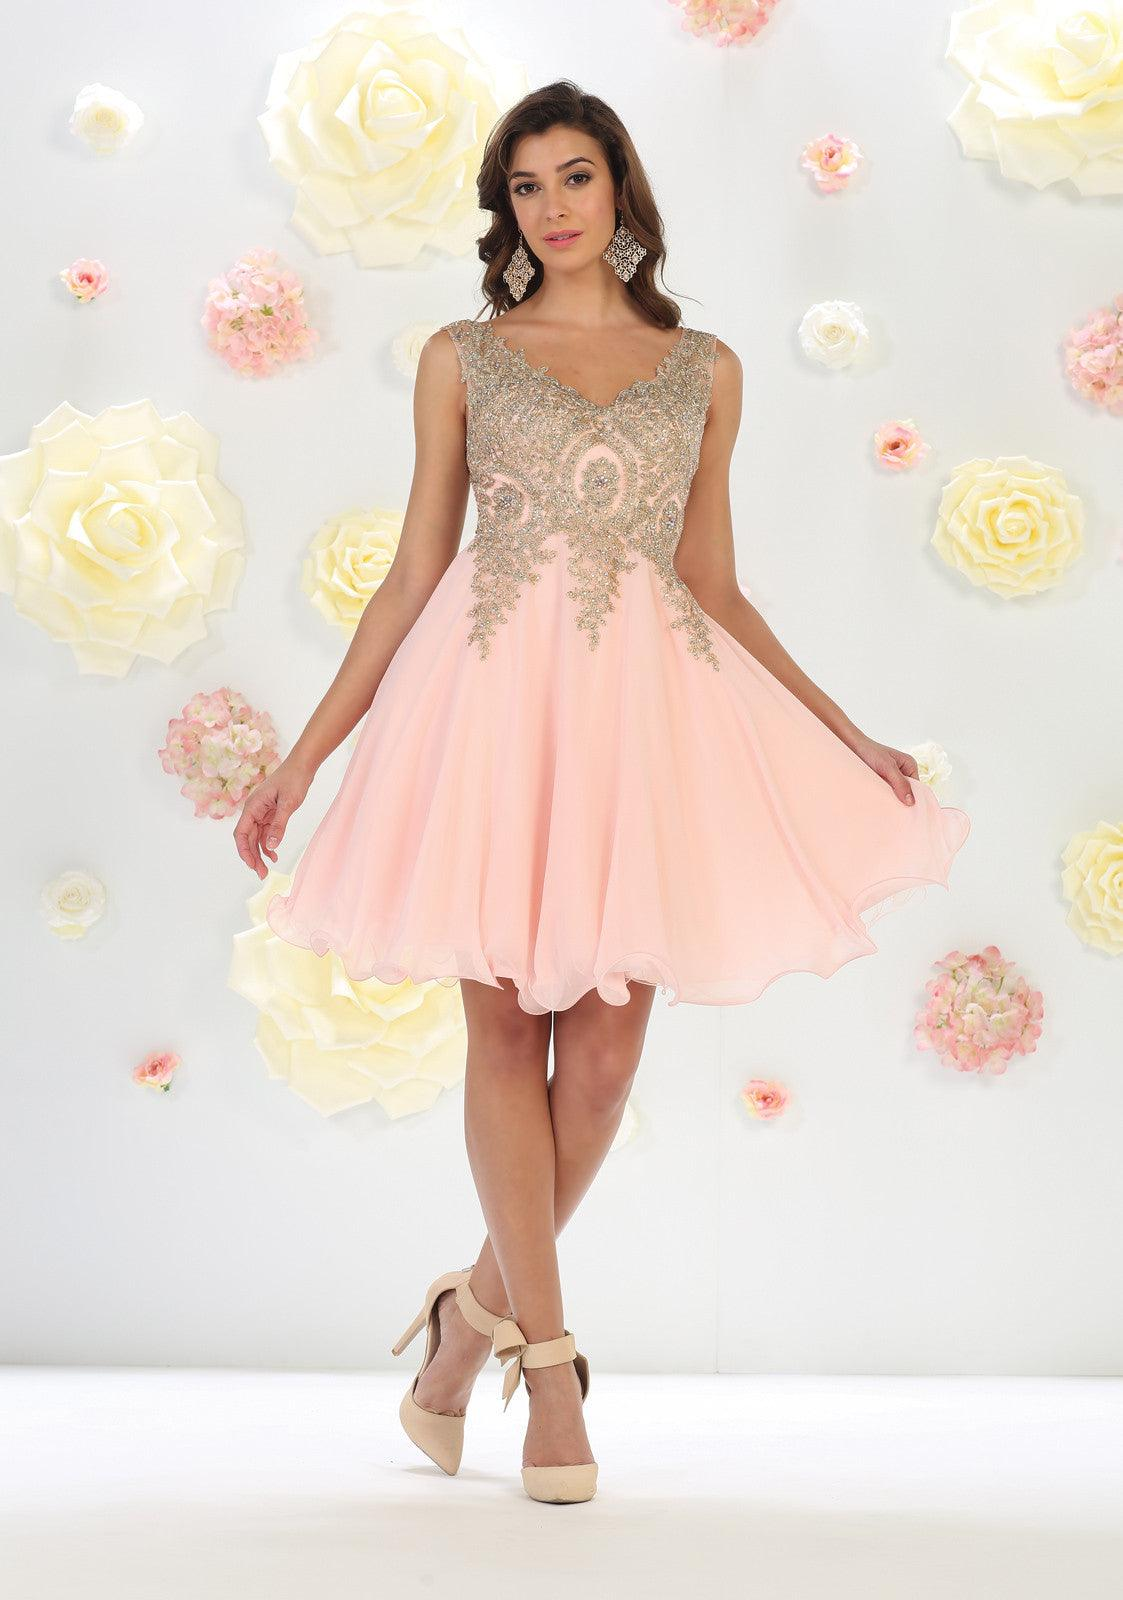 Short Prom Dress Formal Homecoming | DressOutlet - The Dress Outlet